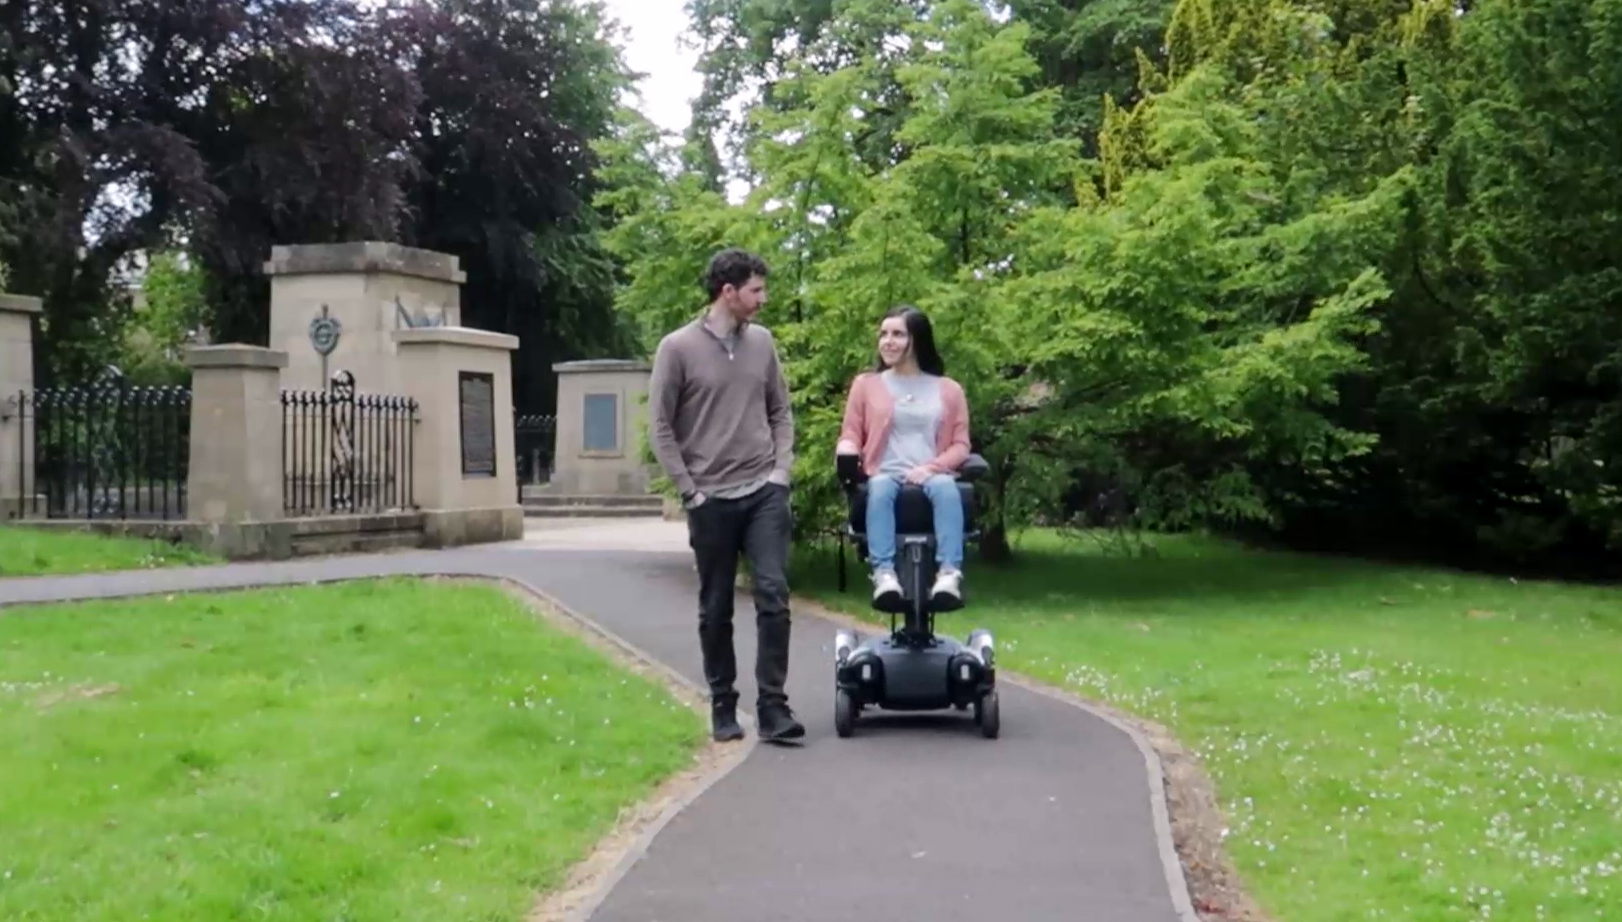 Emma is driving along a path in a park with her wheelchair elevated. Allan is walking along next to her. They are both at the same height.